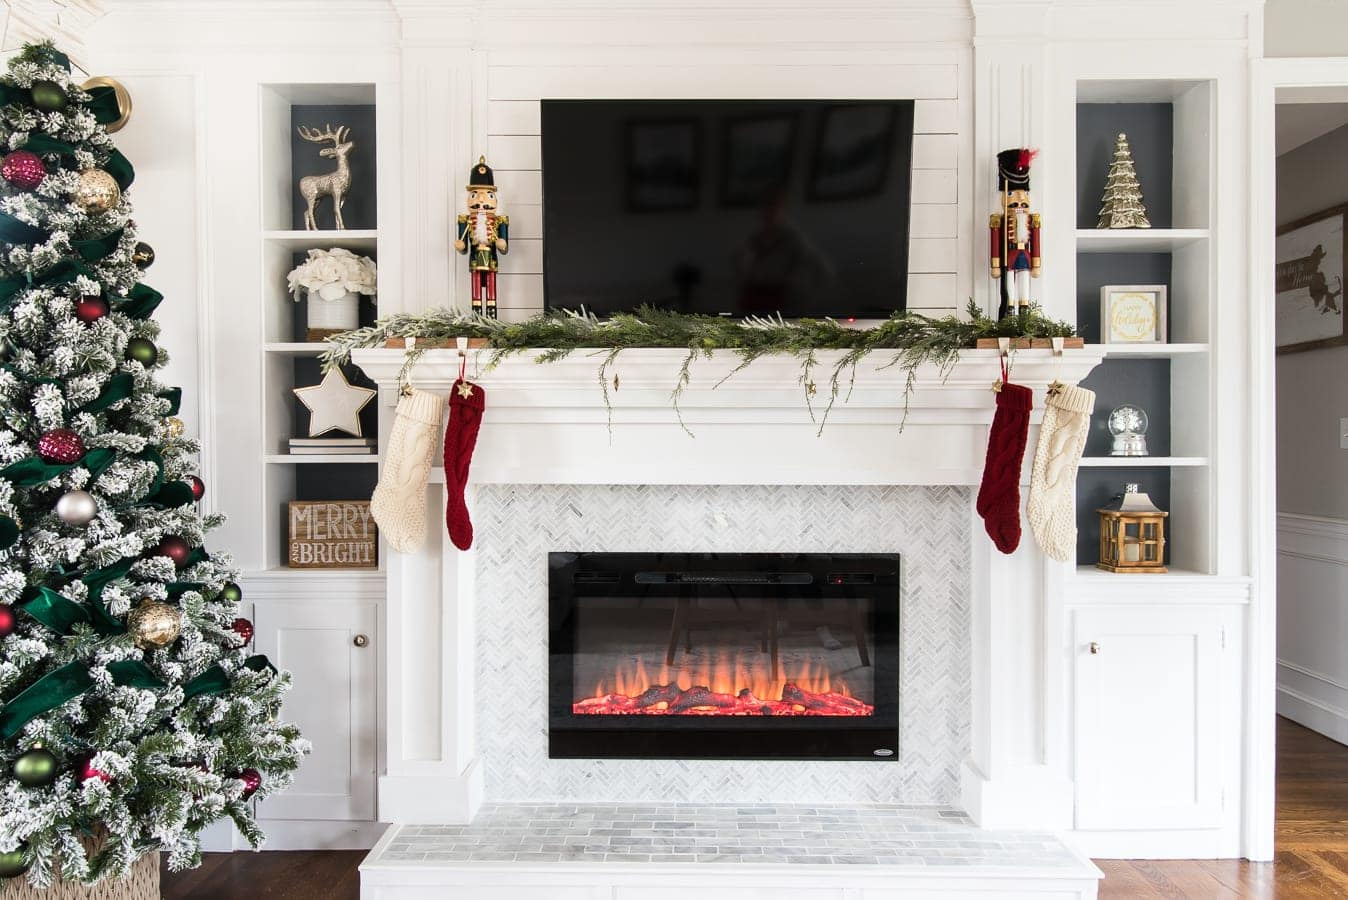 Christmas mantel decorating ideas with tv above it